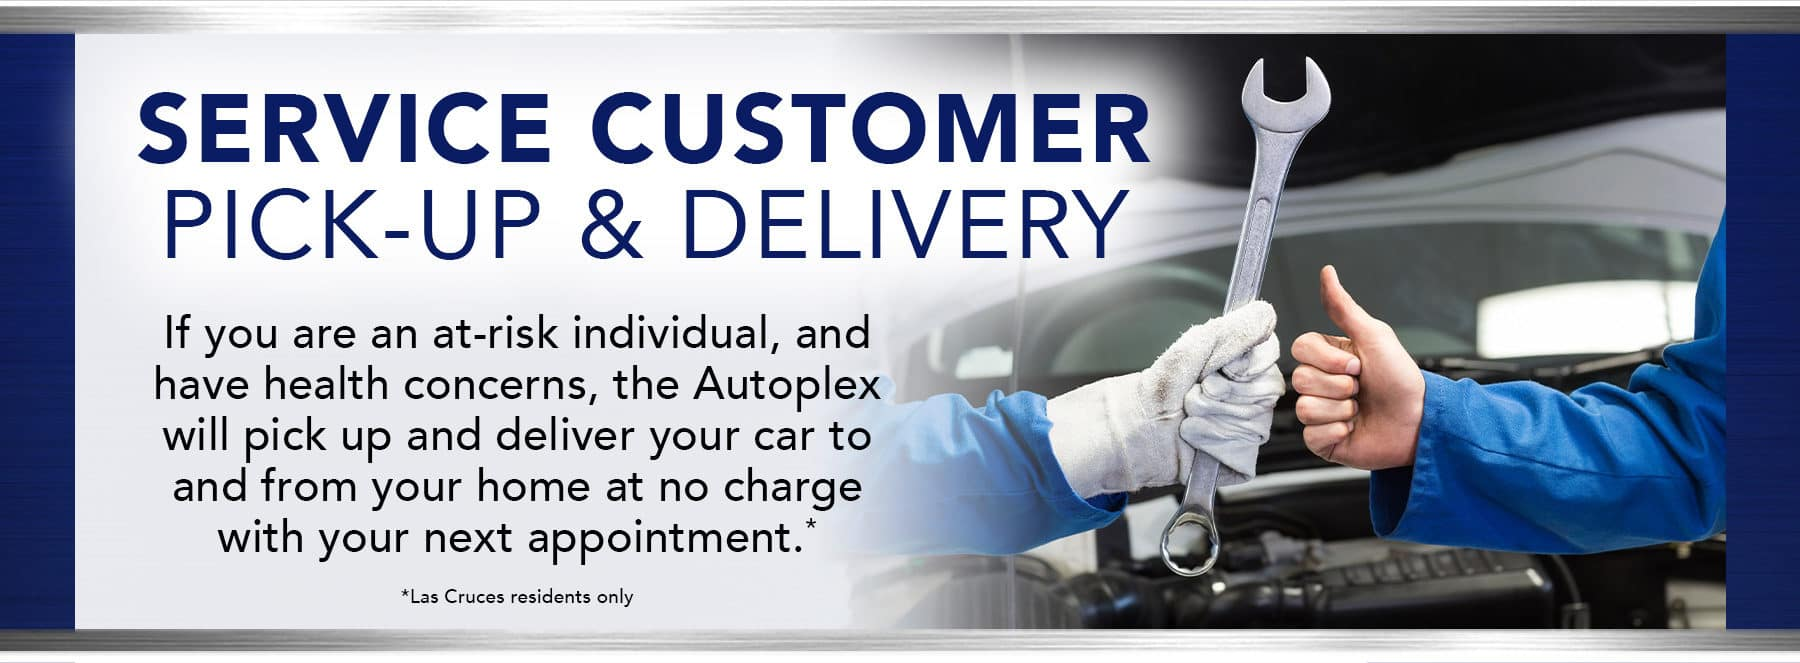 Service Customer Pick-Up And Delivery